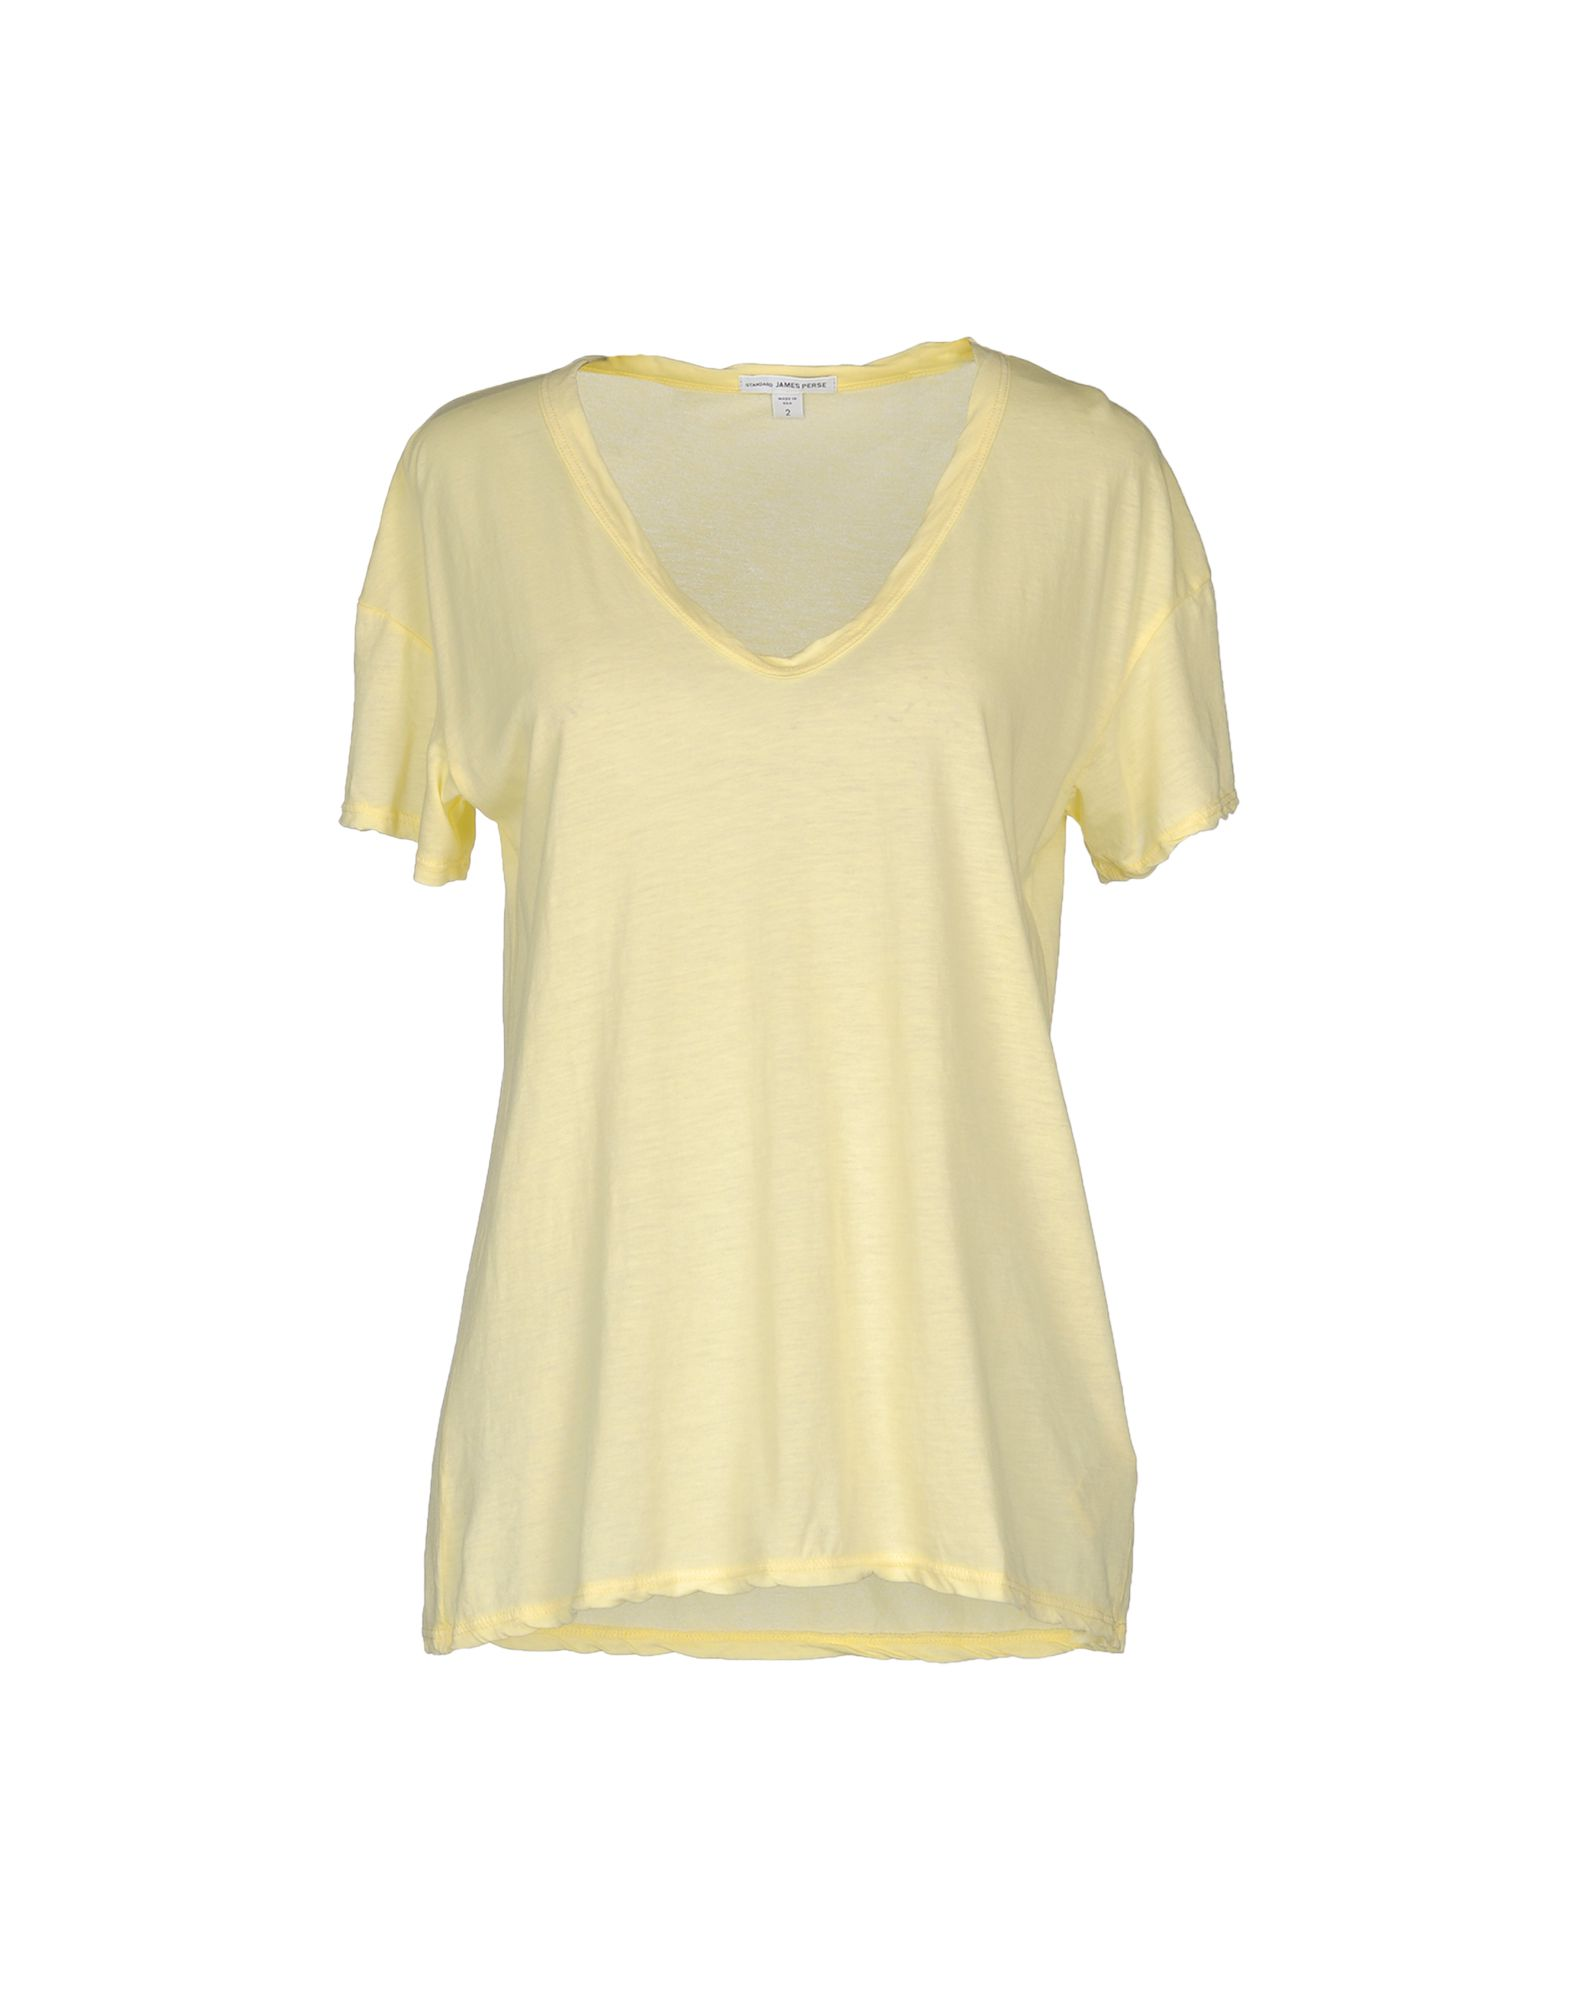 james perse short sleeve t shirt in yellow lyst